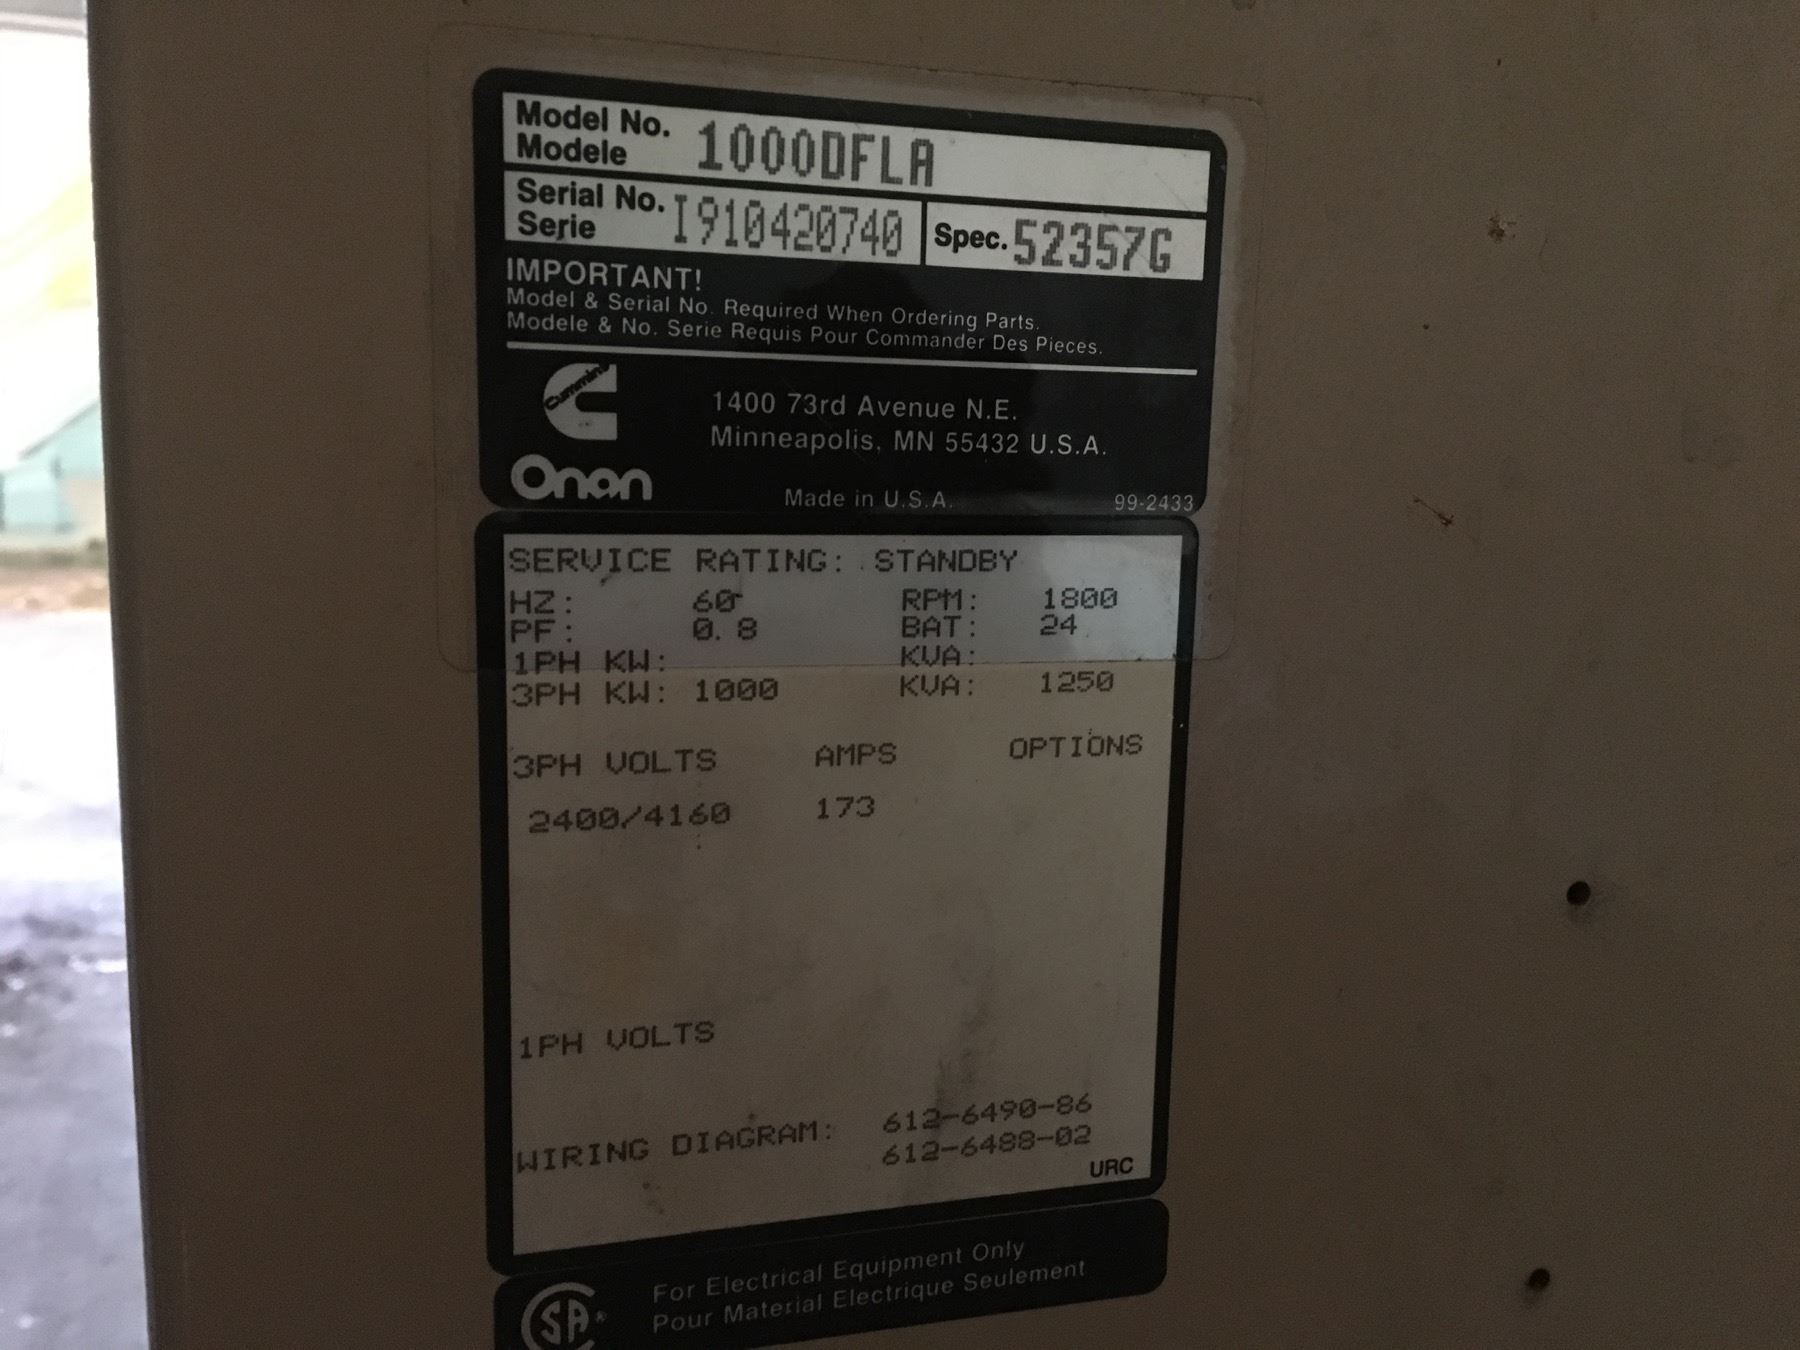 ONAN 1 MEGAWATT GENERATOR SET, MODEL 1000DFLA, SPEC  52357G, 3 PHASE